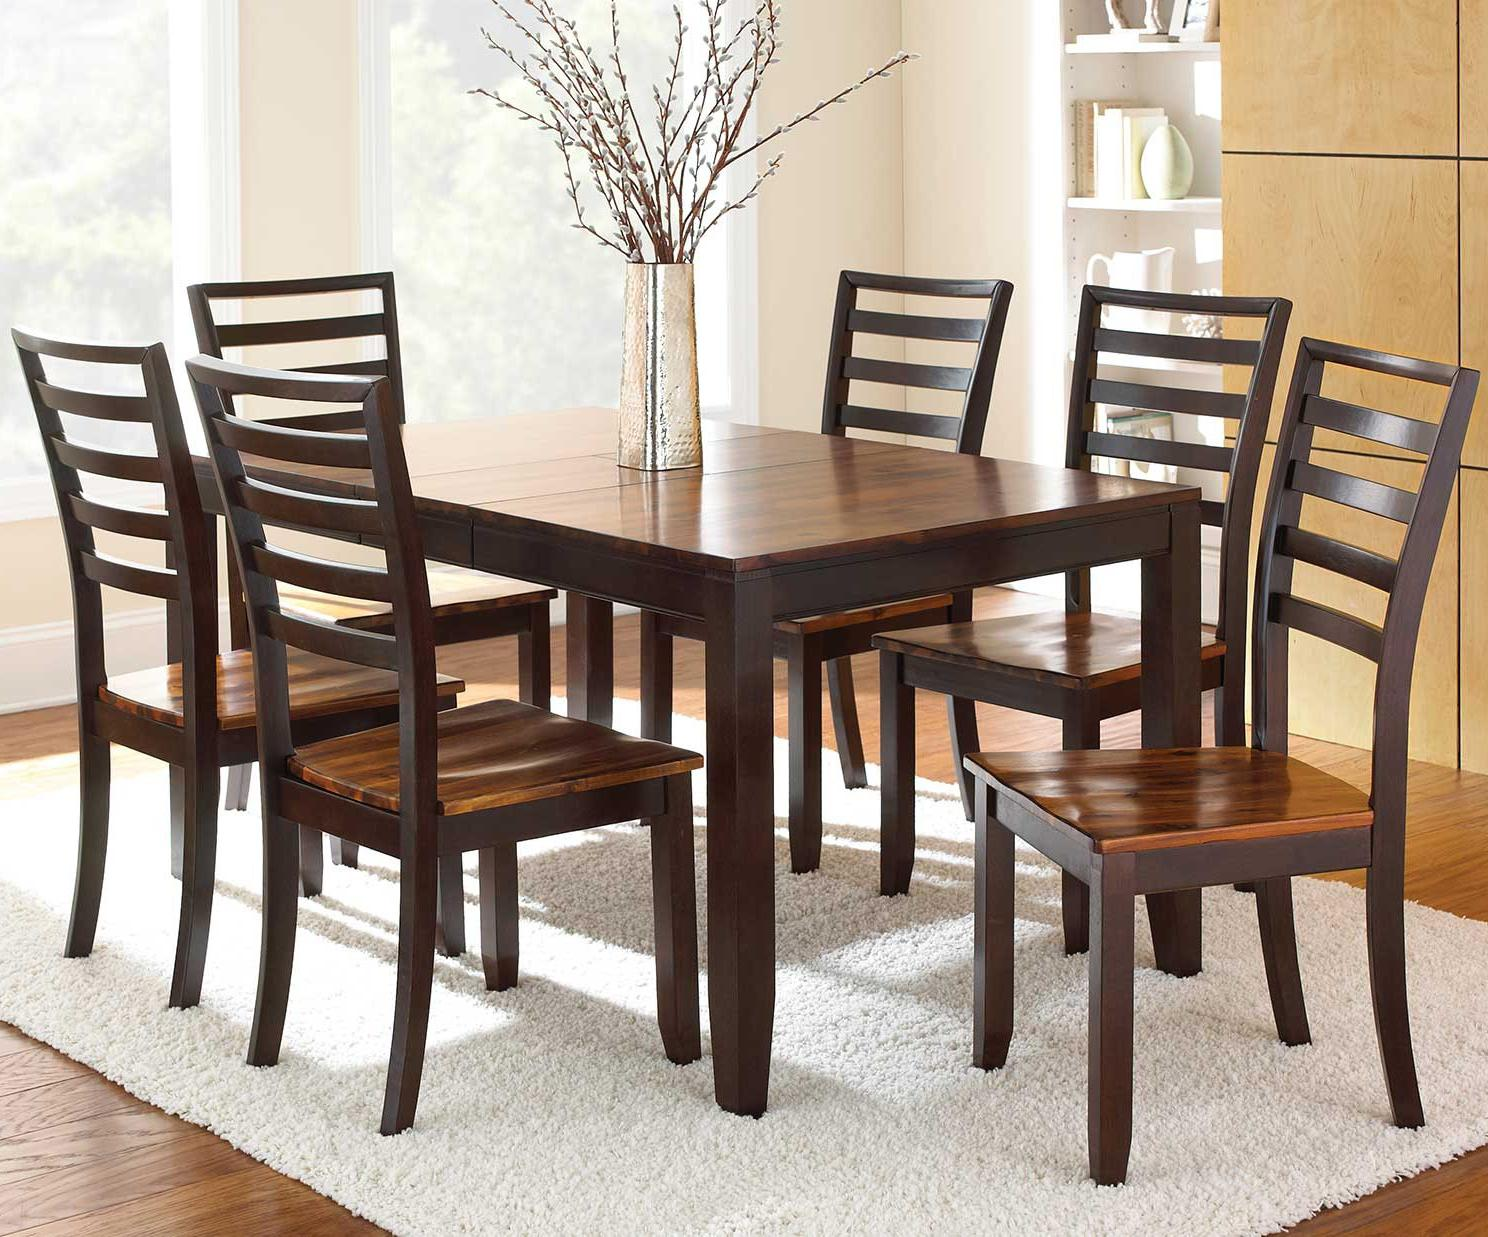 Abaco 7-Piece Dining Set by Steve Silver at Walker's Furniture